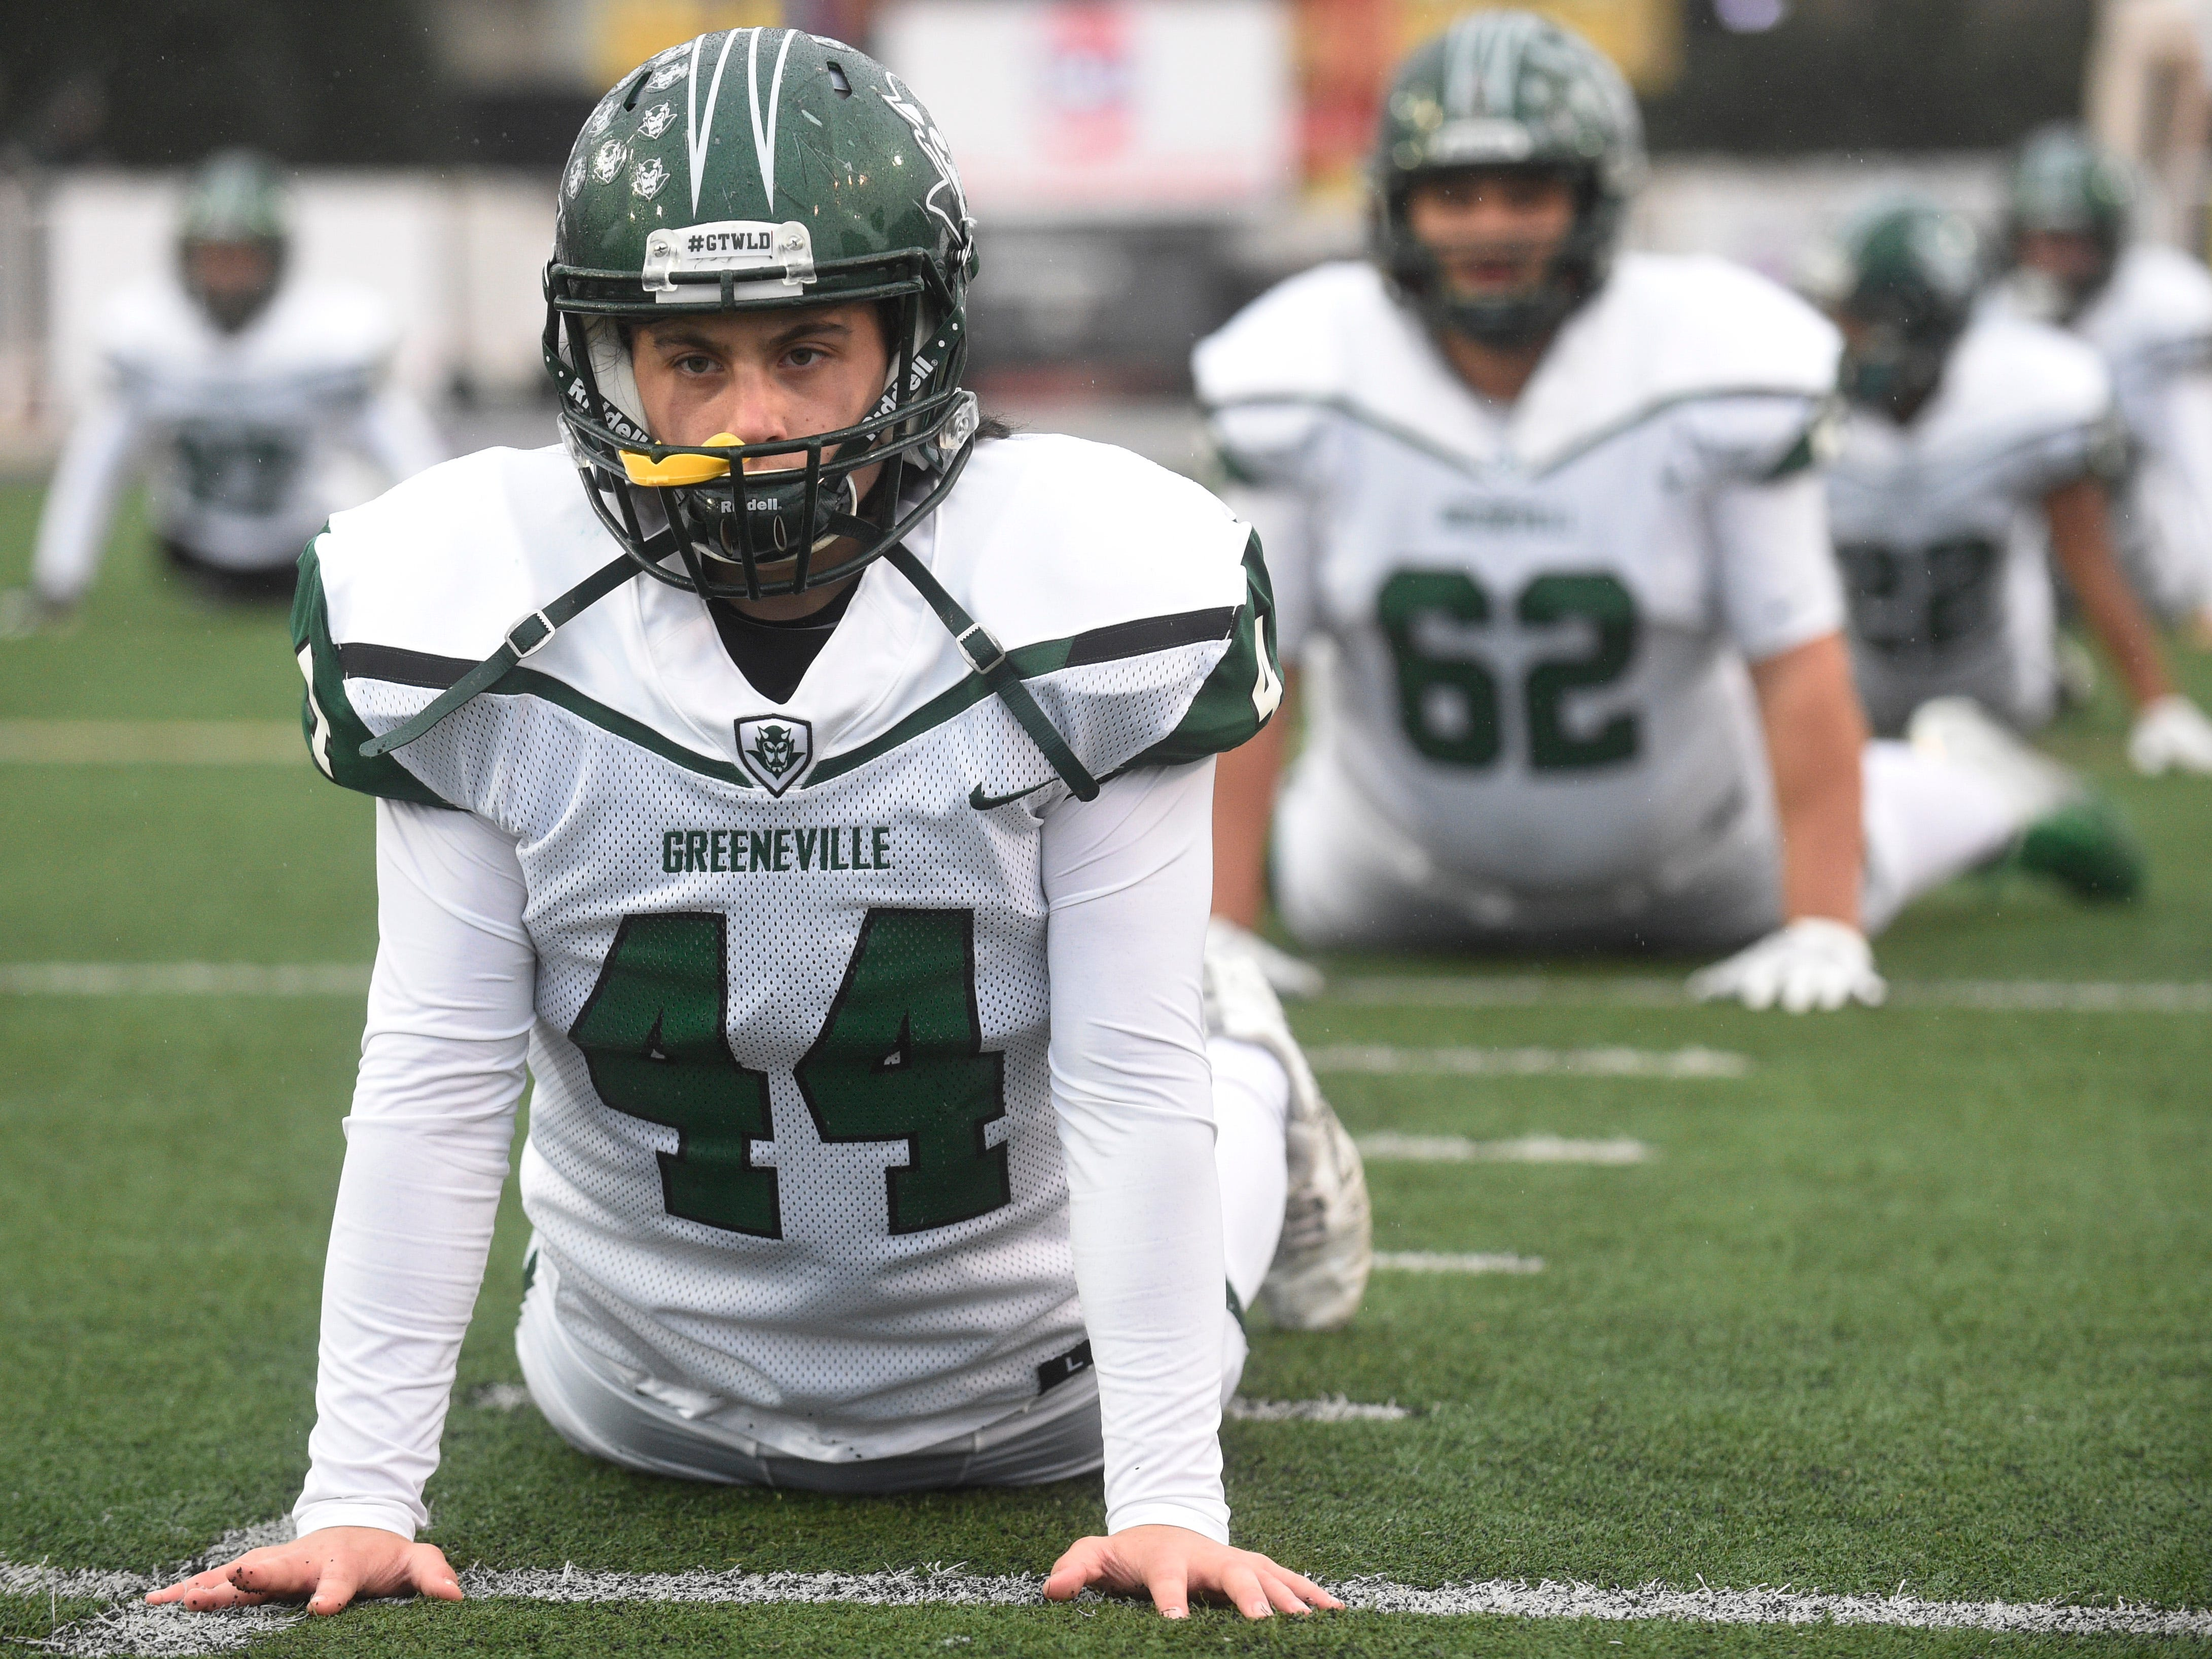 Greeneville's Ashton Greenier (44) and teammates stretch before the Class 4A BlueCross Bowl state championship at Tennessee Tech's Tucker Stadium in Cookeville, Tenn., on Thursday, Nov. 29, 2018.